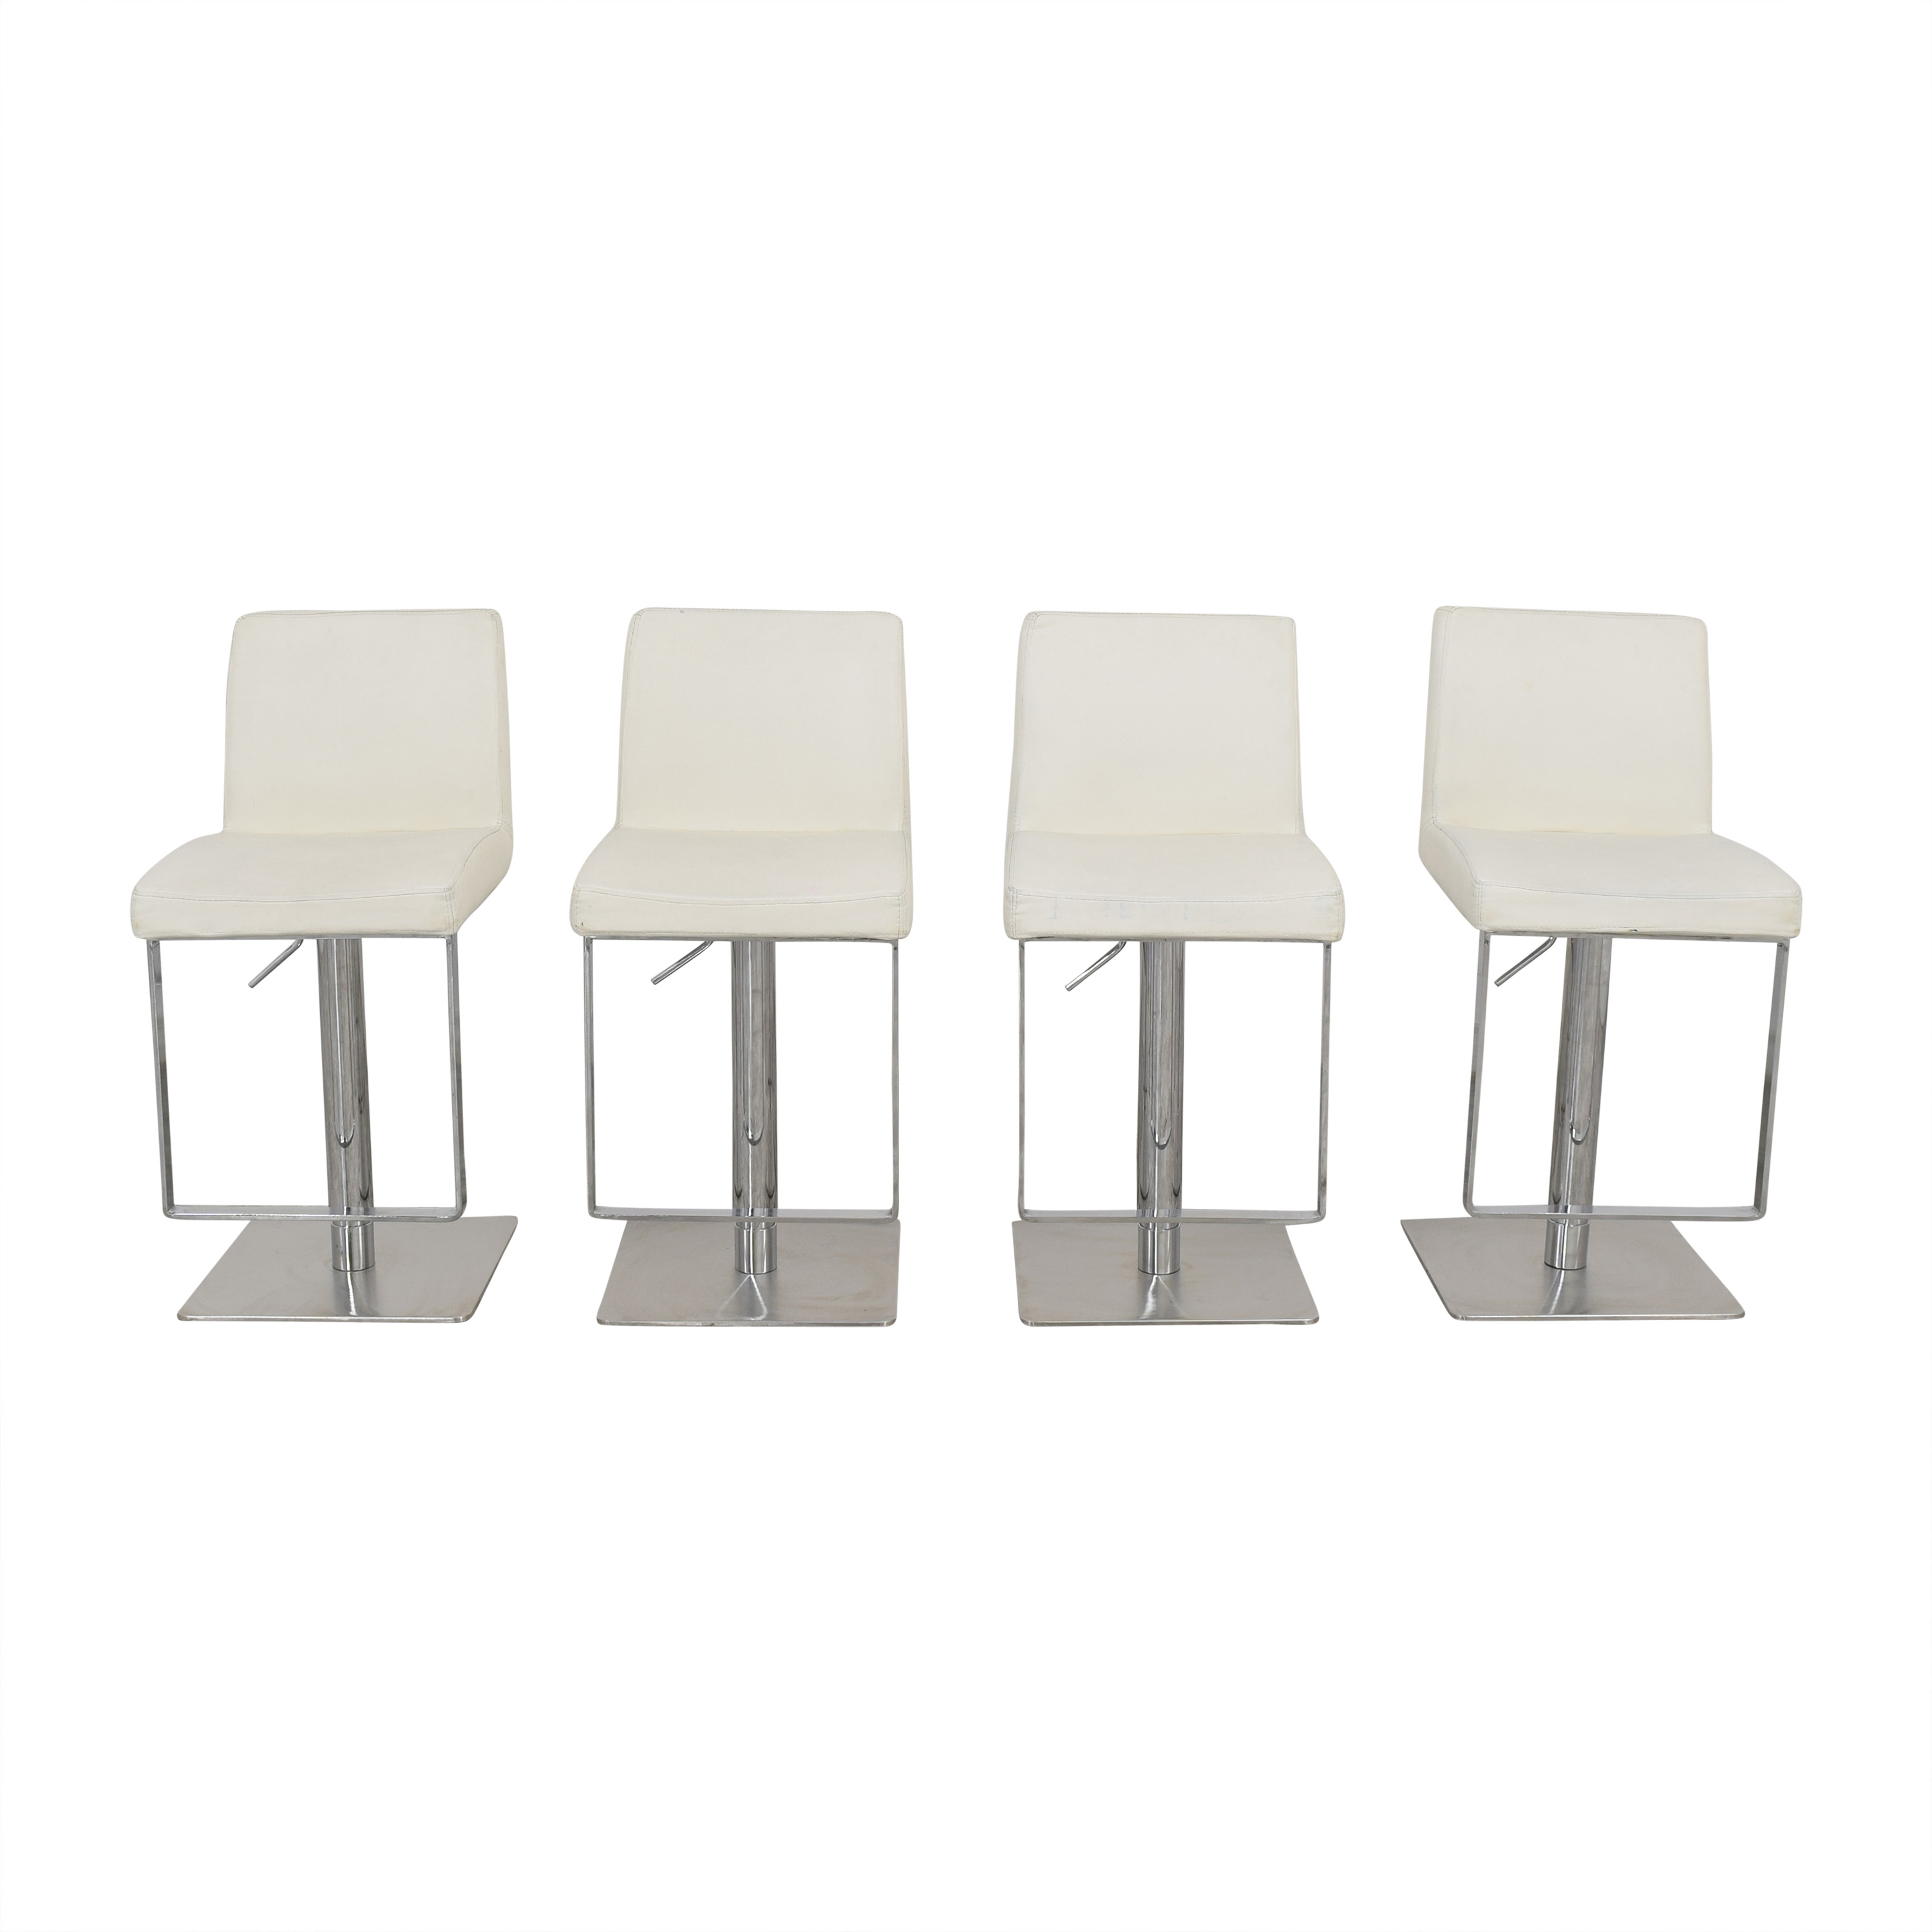 Chintaly Imports Chintaly Imports Adjustable Swivel Bar Stools second hand